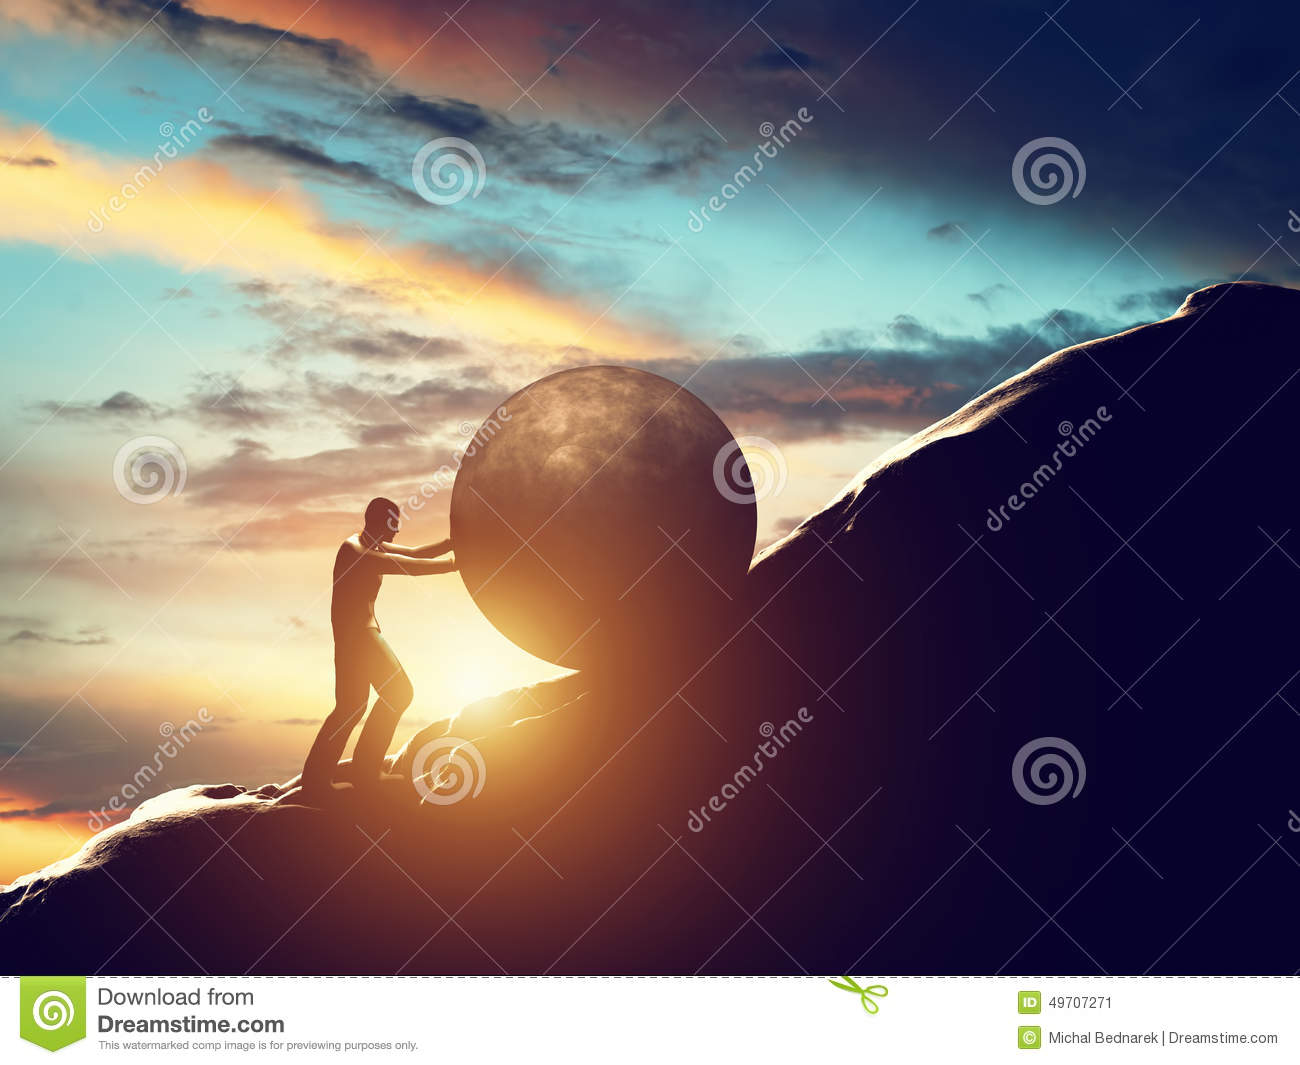 Sisyphus metaphor. Man rolling huge concrete ball up hill.